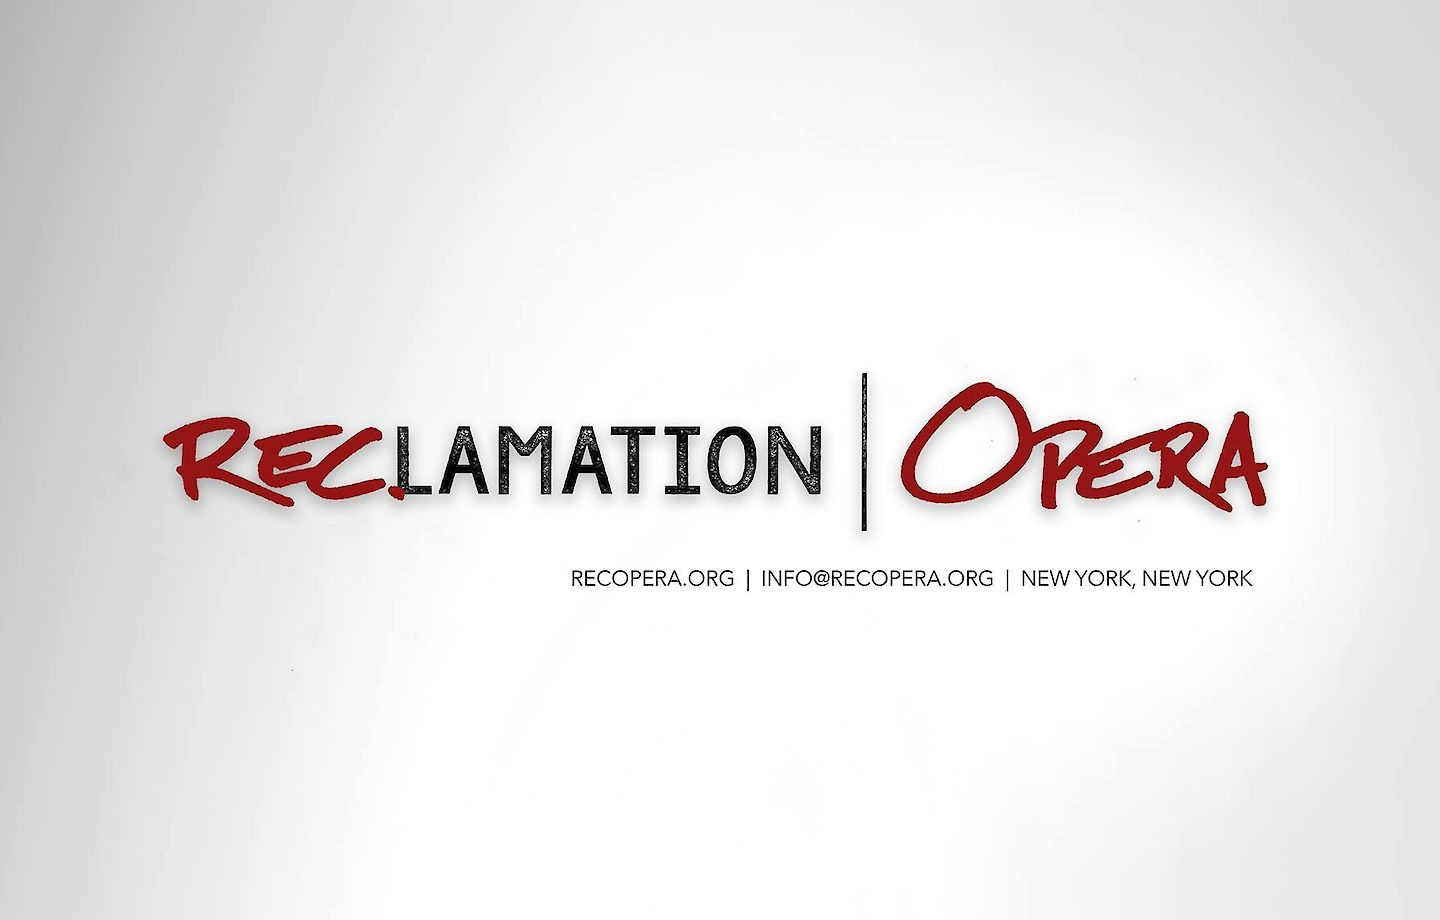 RECLAMATION OPERA to produce video of Ordinary Dust: Lazarus Lieder image